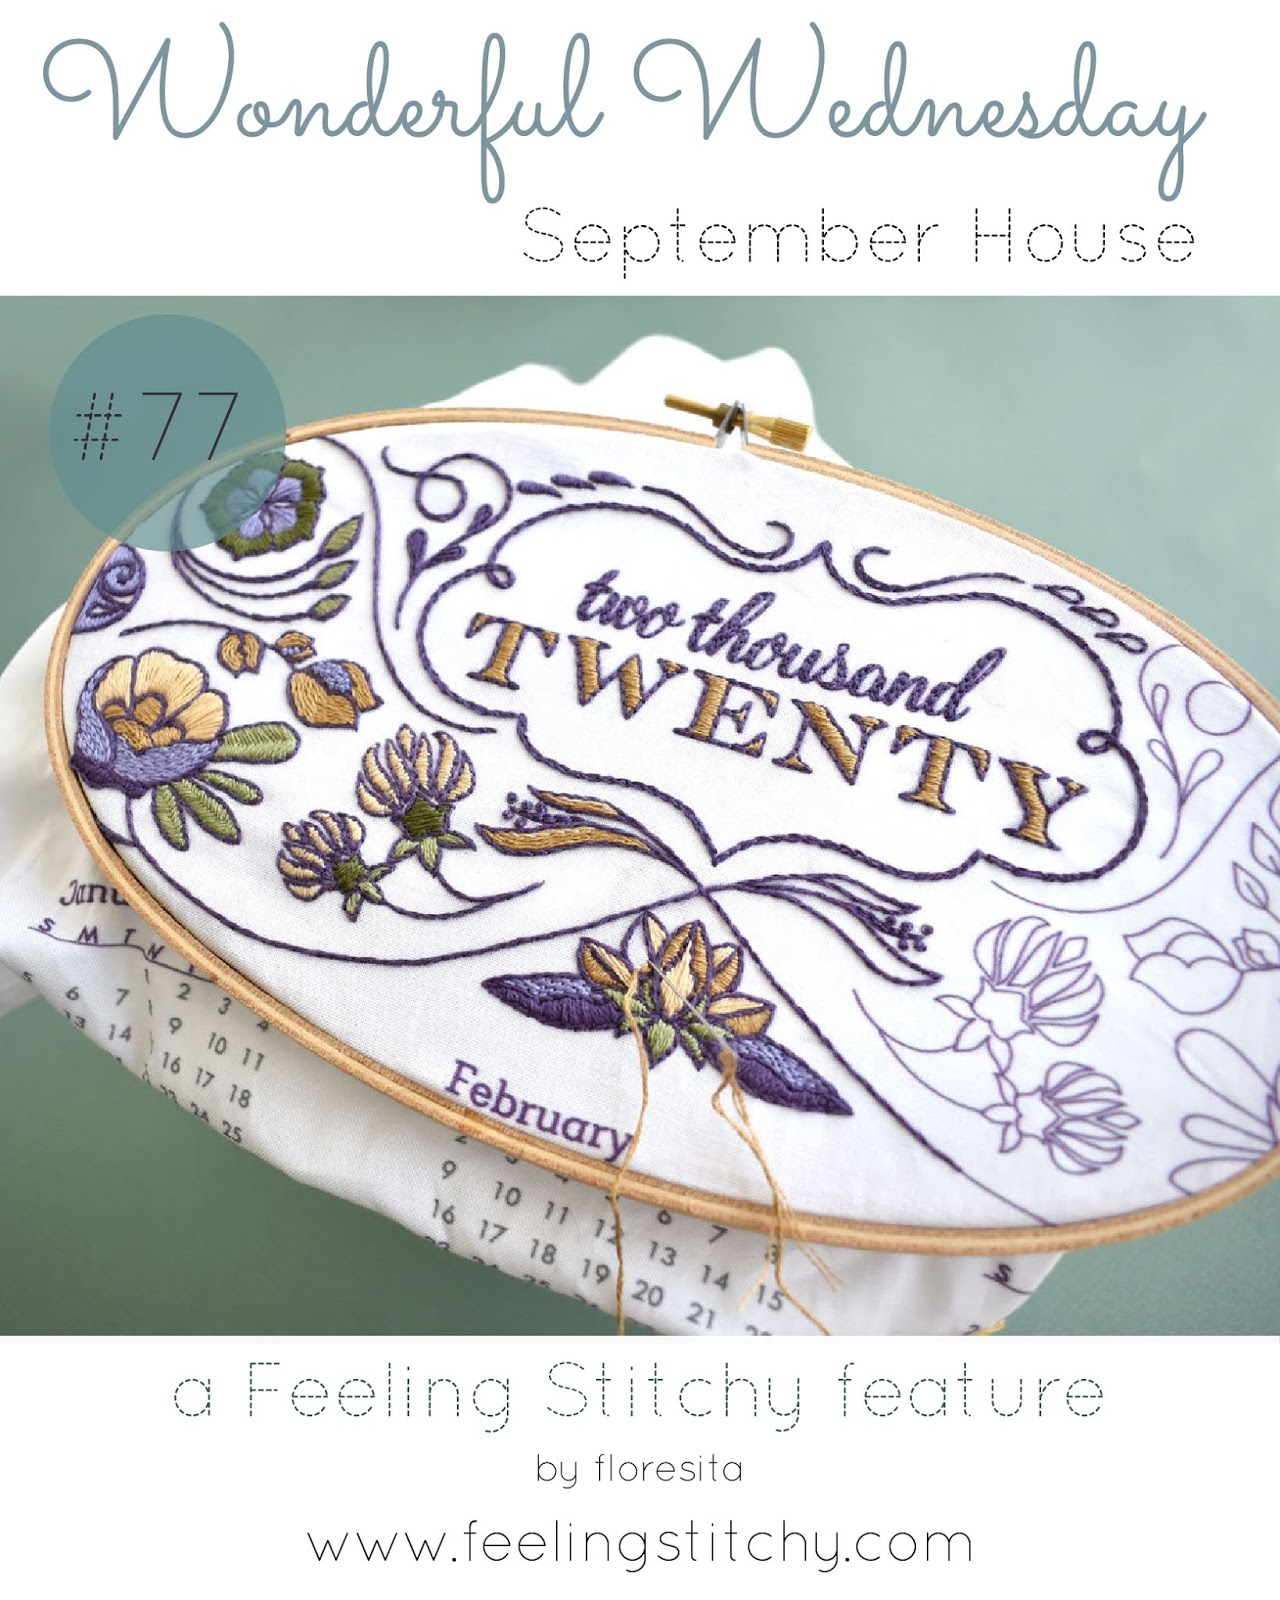 Wonderful Wednesday 77 - Septemberhouse Calendar Kit on Etsy as featured by floresita on Feeling Stitchy